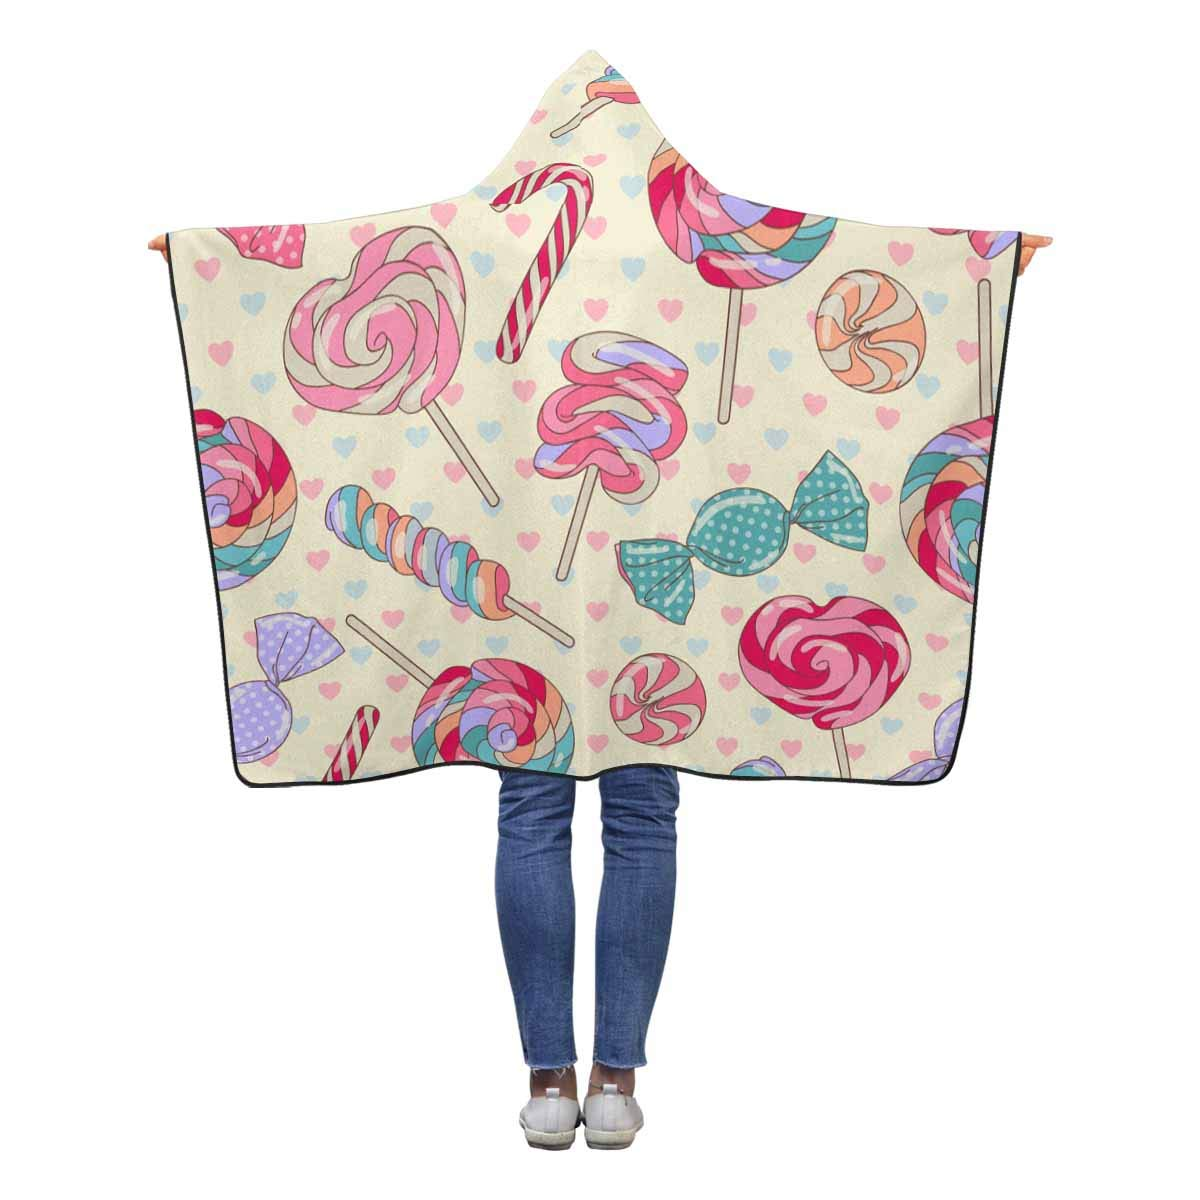 InterestPrint Colorful Sweet Lollipop Candy Throw Blanket 50 x 40 inches Soft Lightweight Blankets with Hood